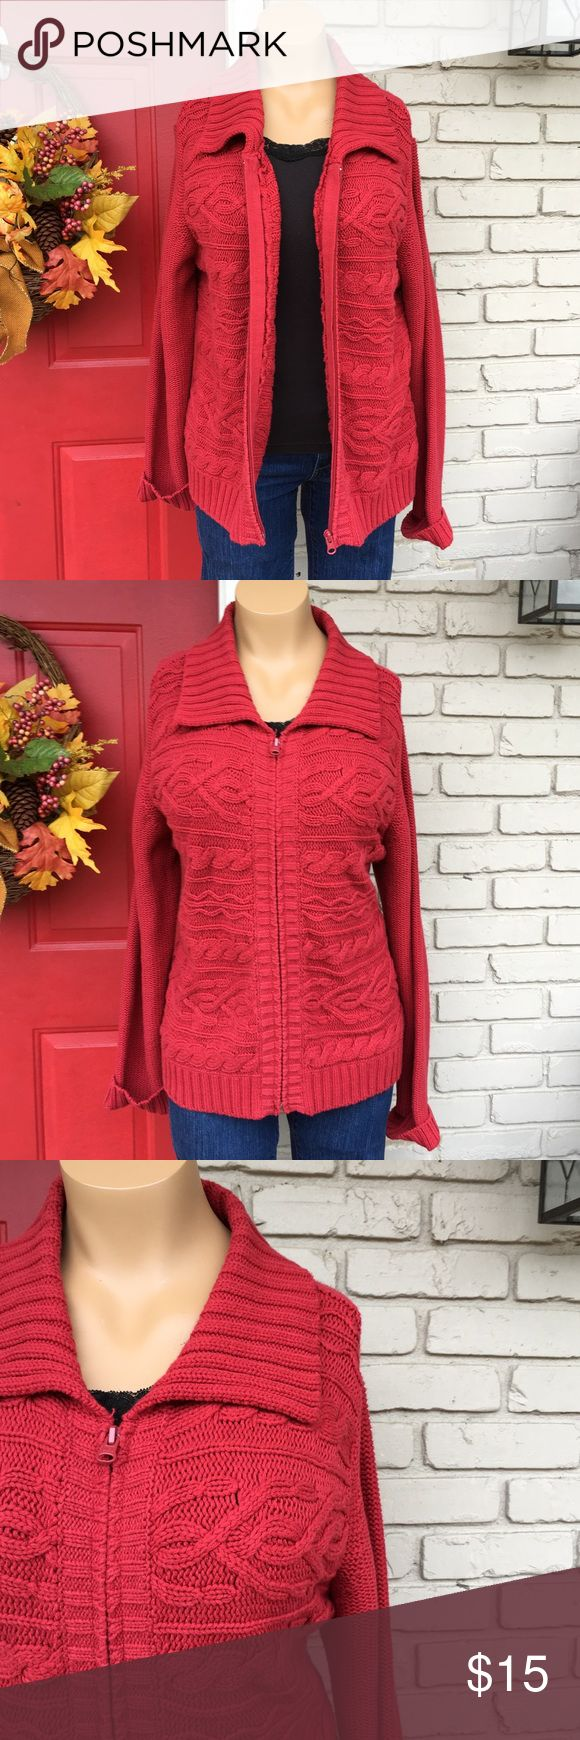 Red zip up sweater jacket Comfy and cozy red zip up sweater jacket. Some minor fading- nothing major. Pics are pretty true to color. Size PXL St. John's Bay Sweaters